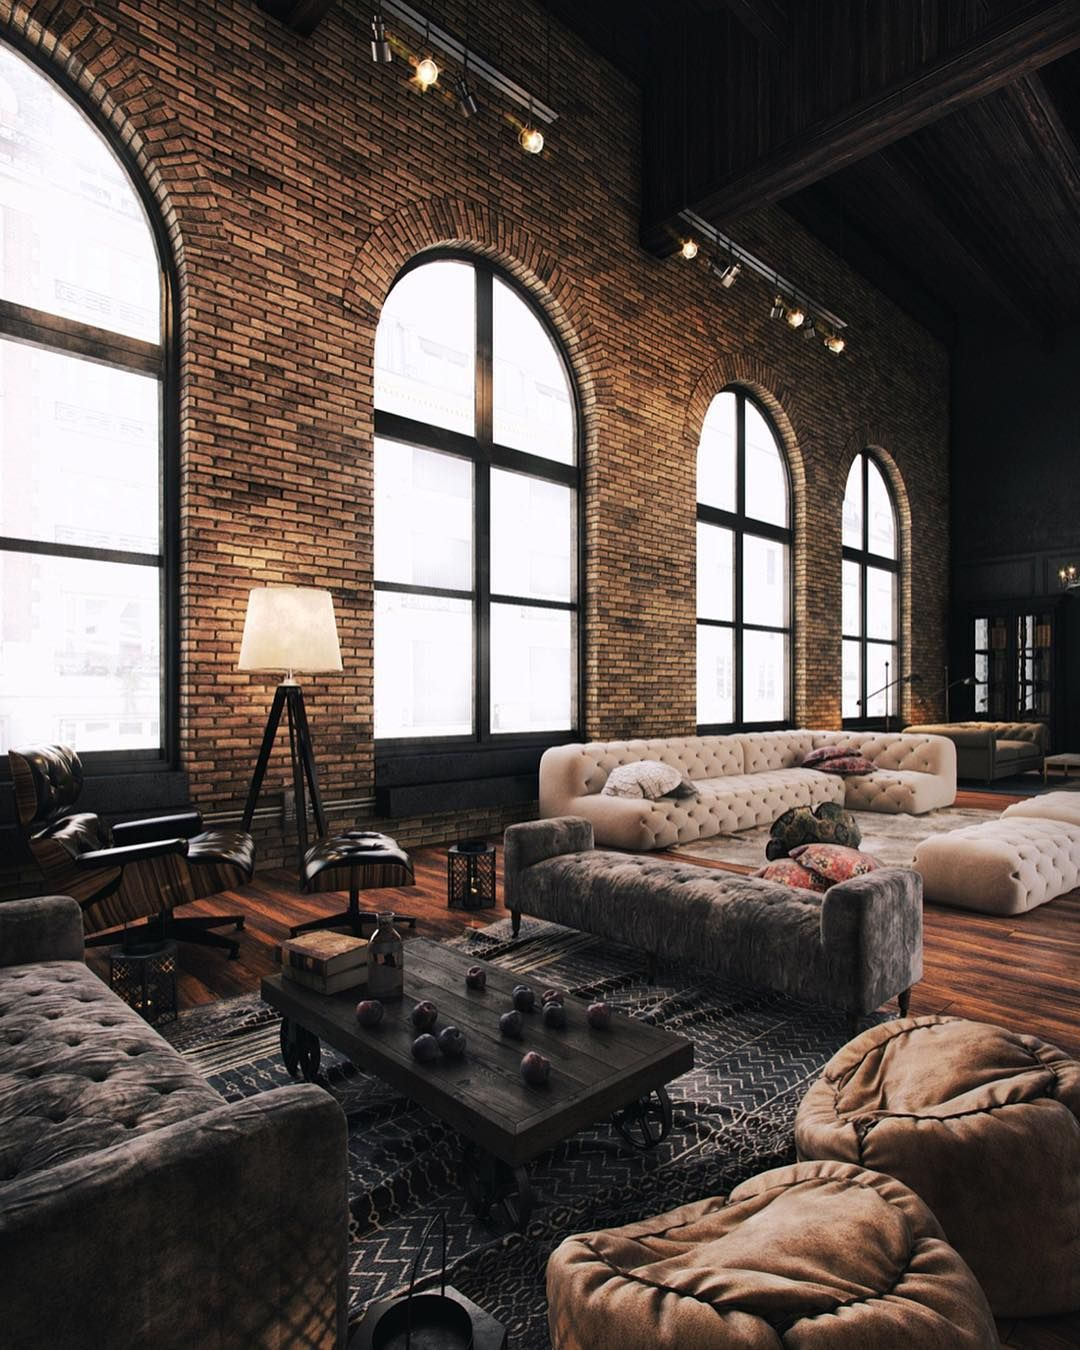 Interior Design Architecture On Instagram Dramatic And Industrial Loft Style T Industrial Living Room Design Loft Design Industrial Lighting Design